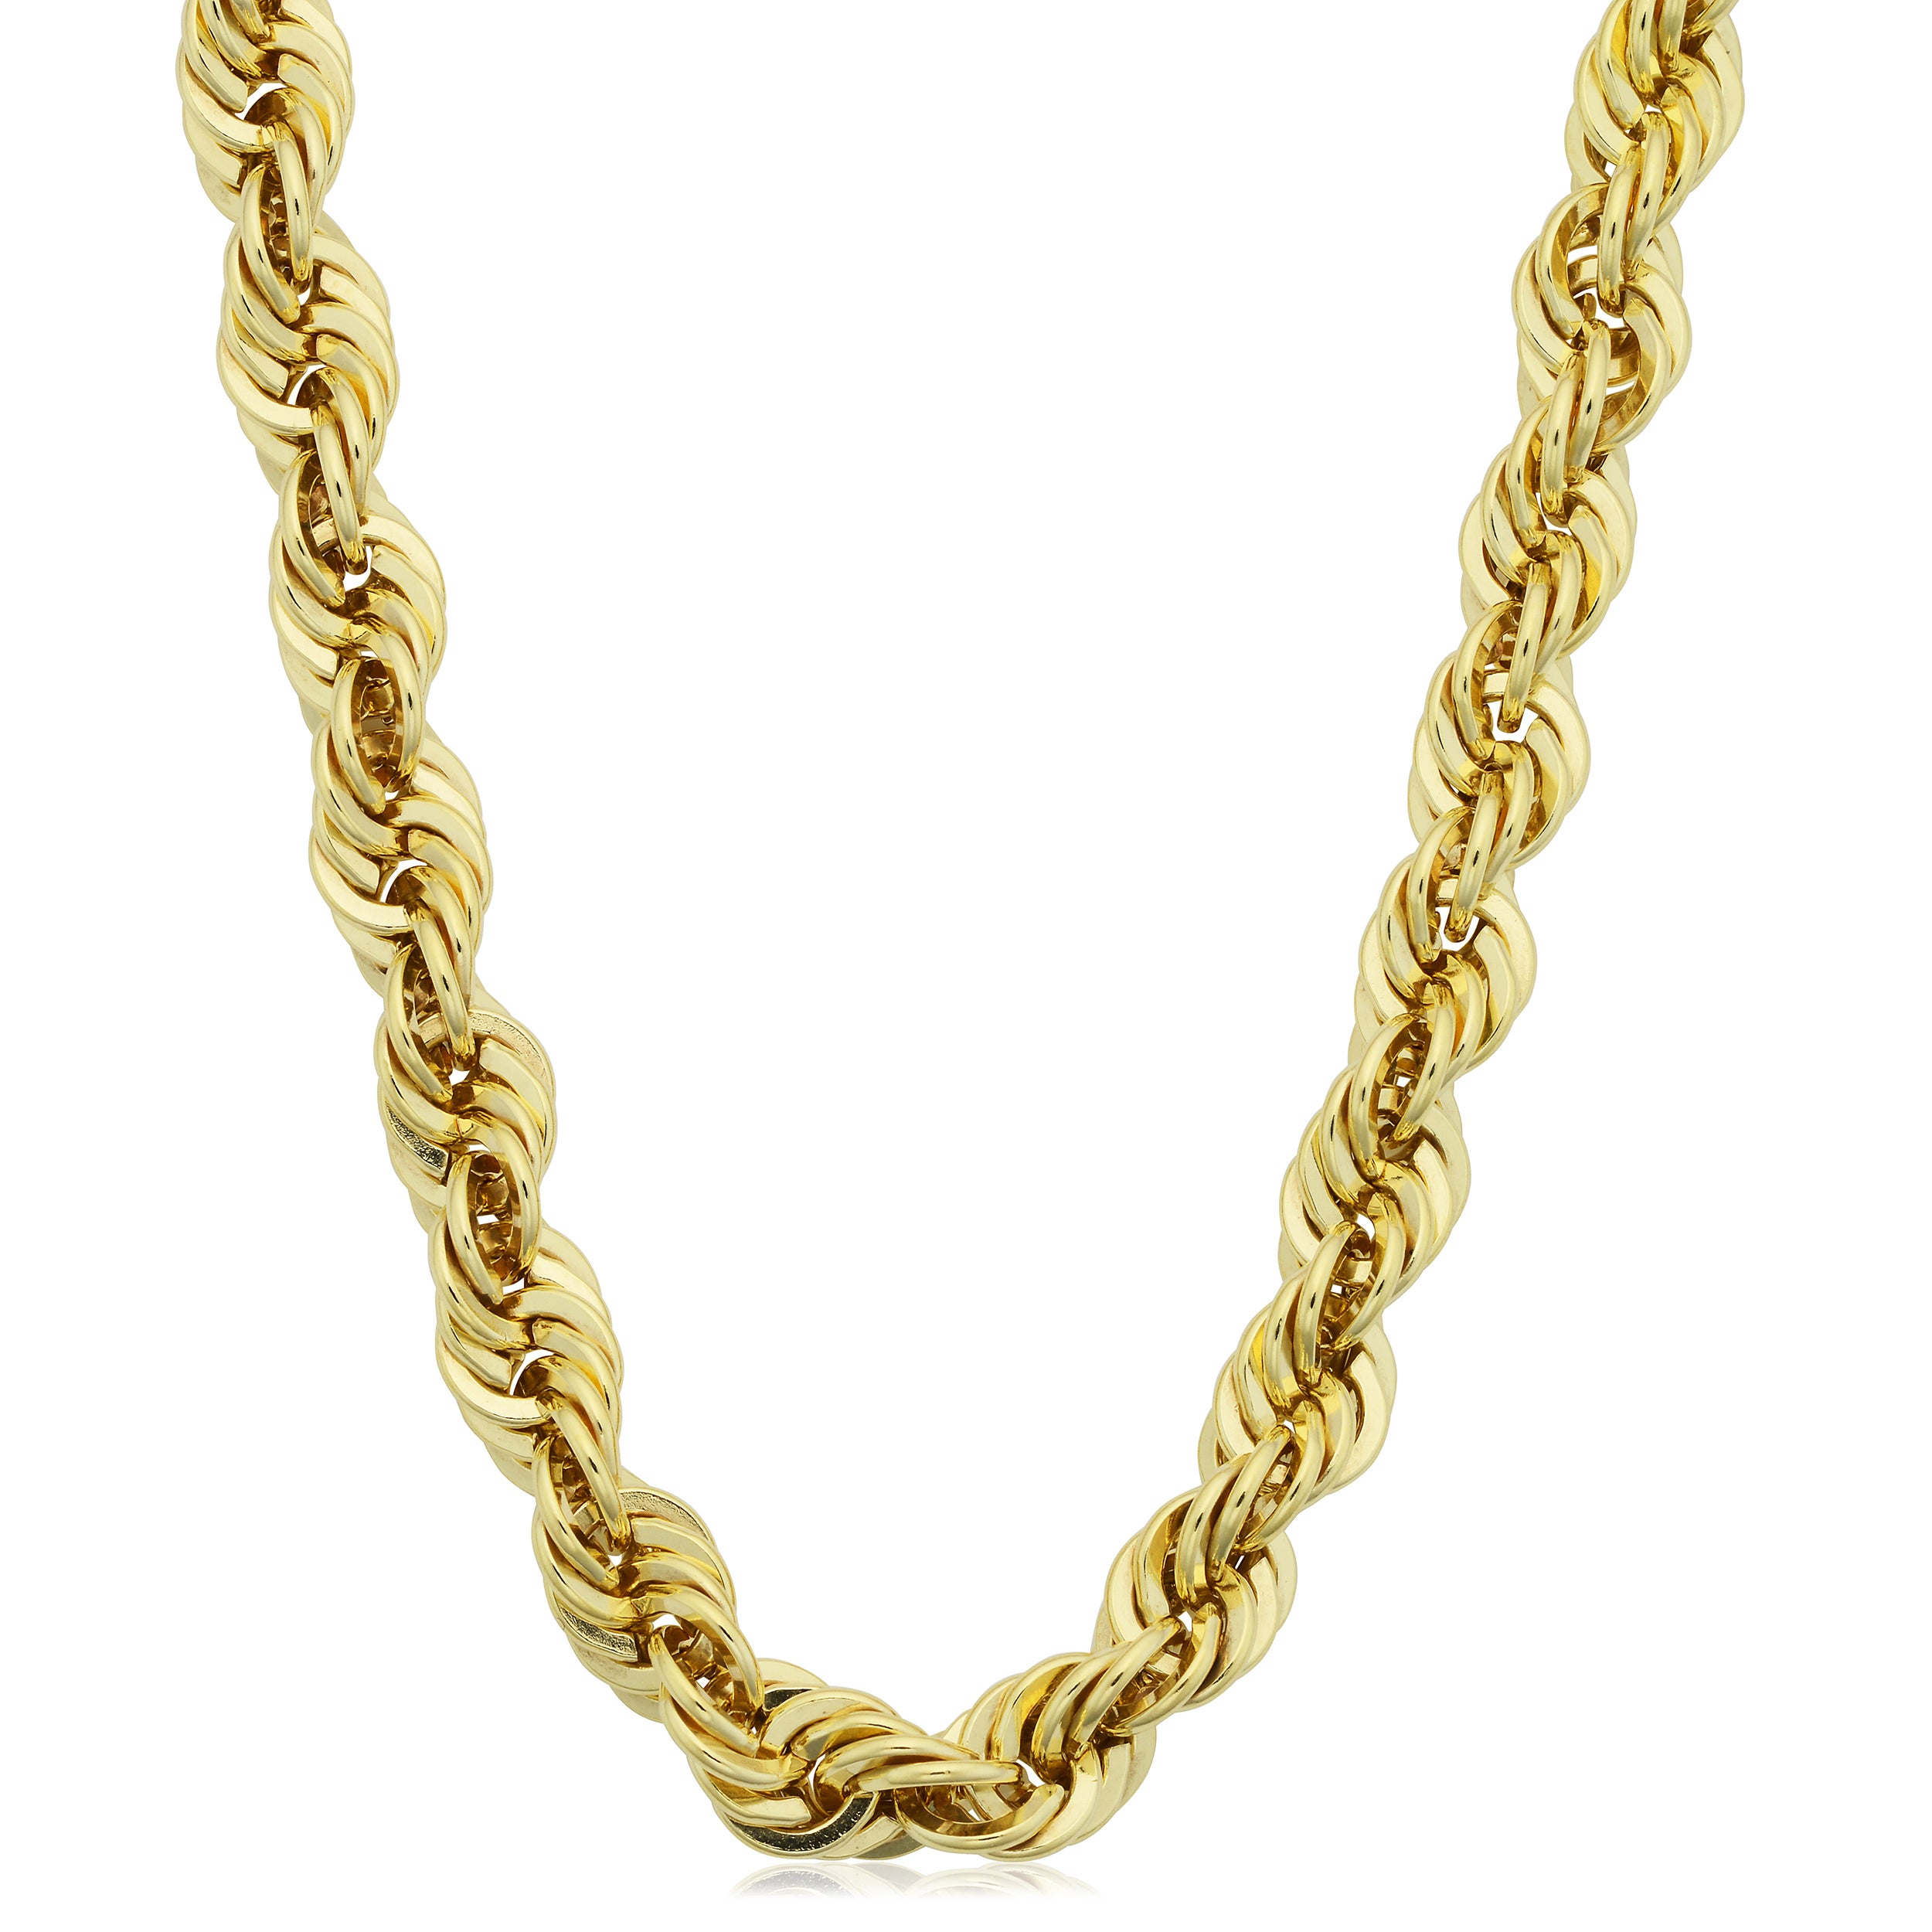 1ae4a55cd8eae 14k Yellow Gold-filled Men's 6-mm Rope Chain Necklace (16 - 36 inches)